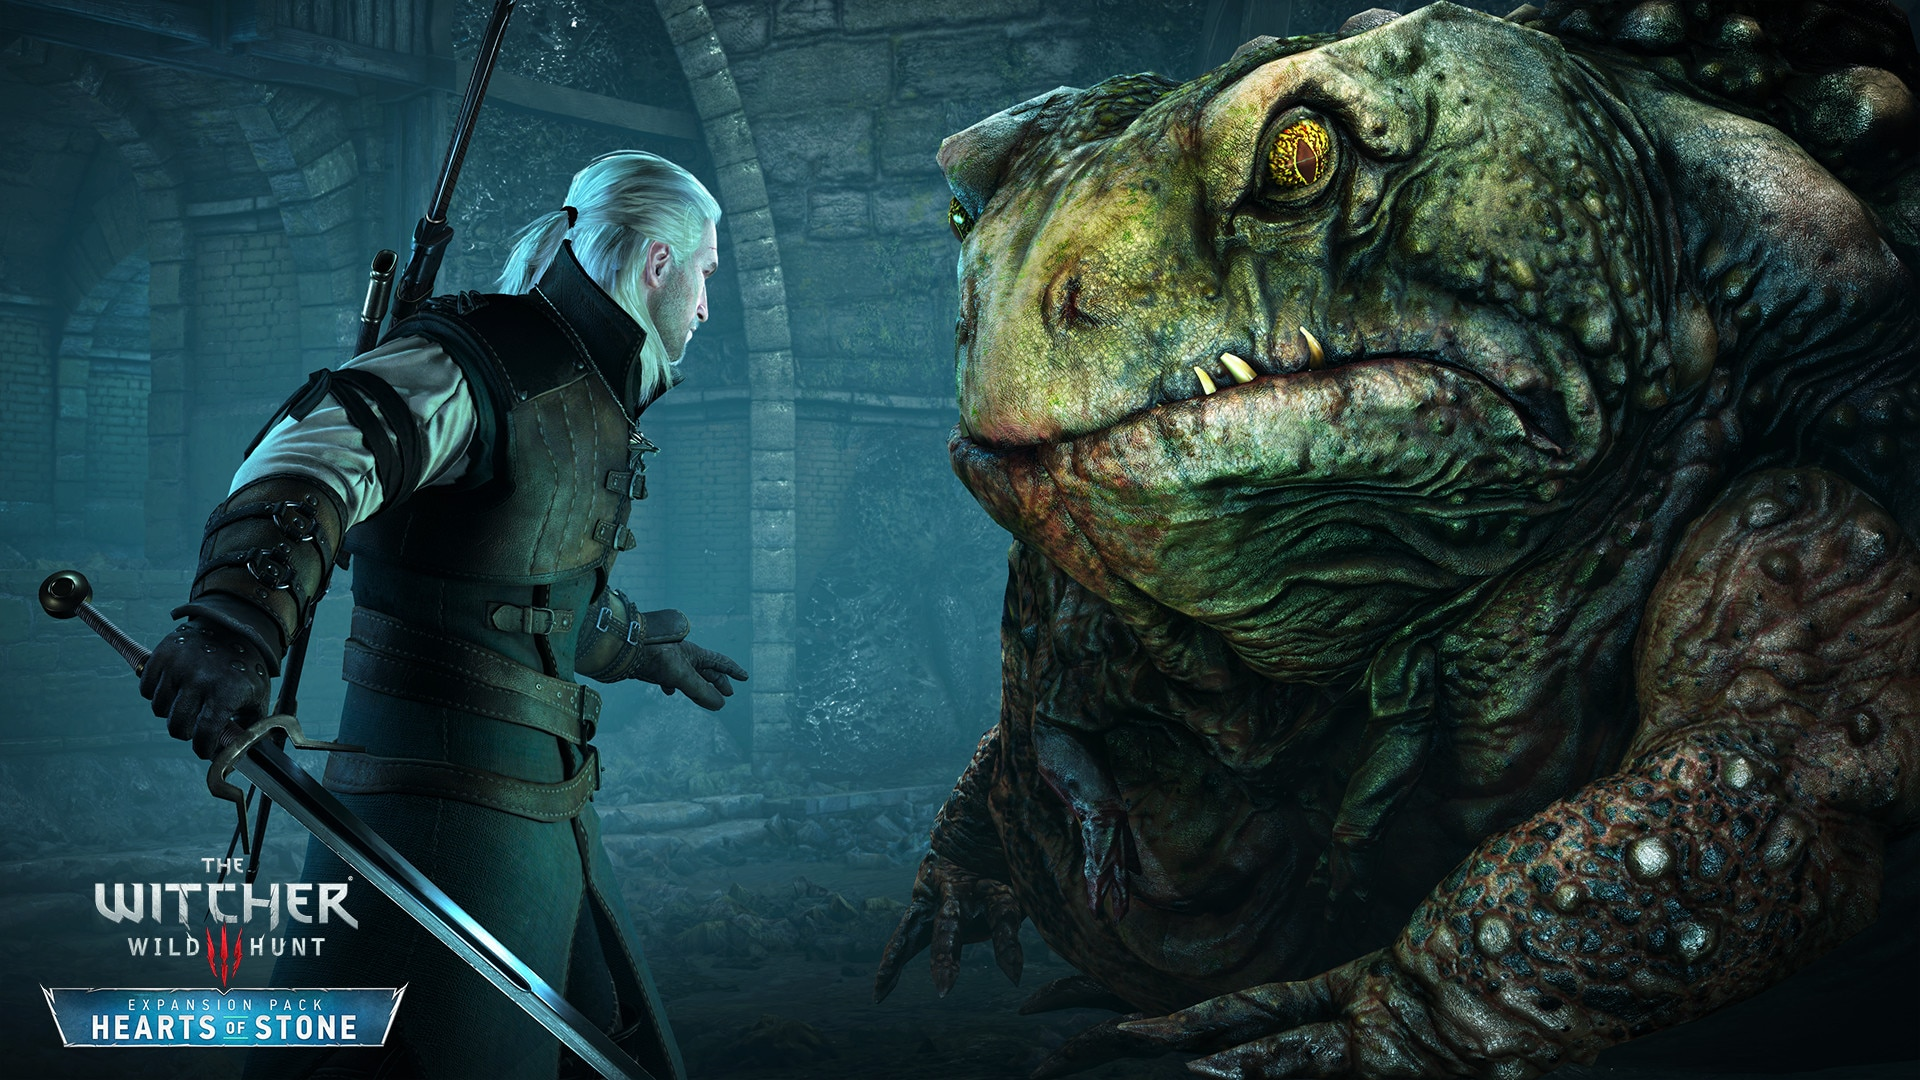 The Witcher 3: Wild Hunt - Hearts of Stone (PC) - GOG.COM Key - GLOBAL - 3